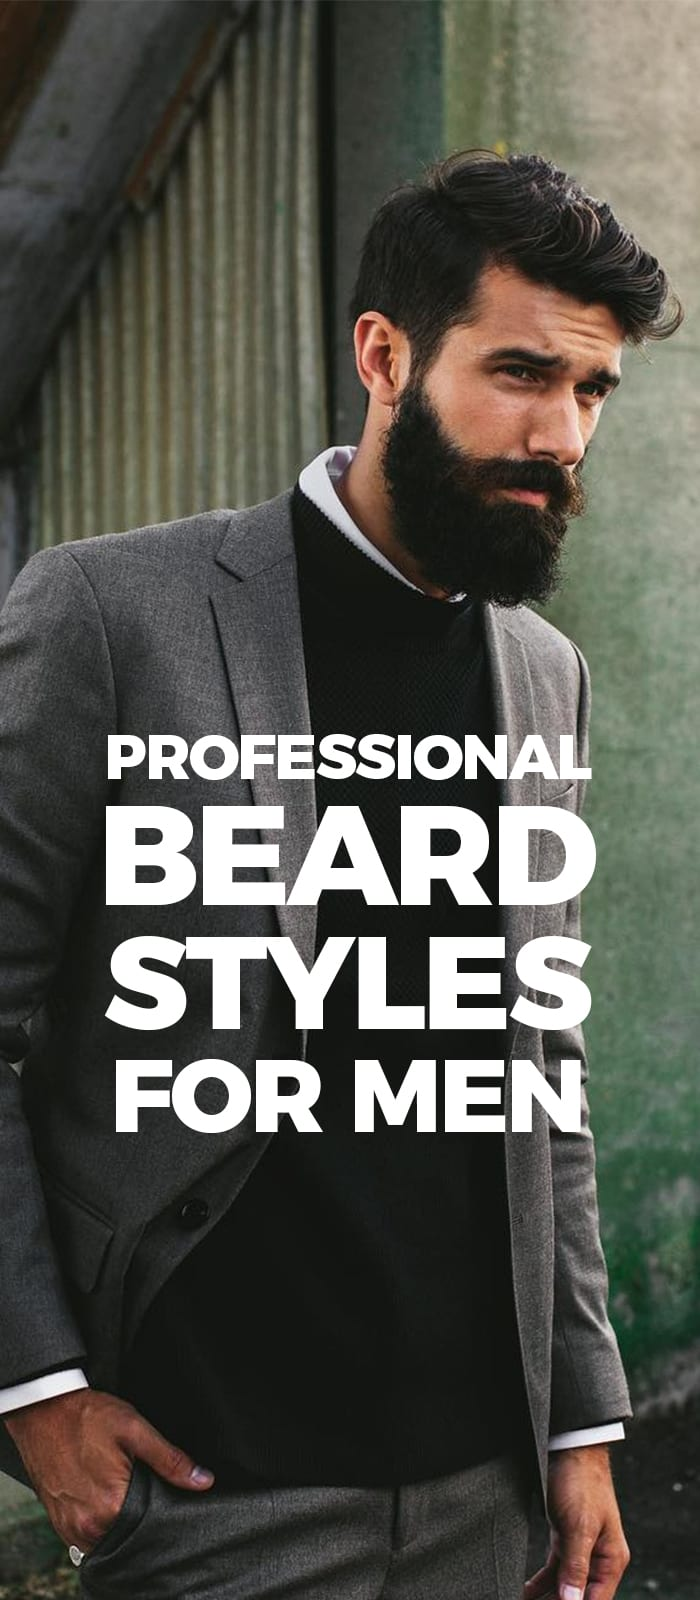 Beard Styles For Professionals